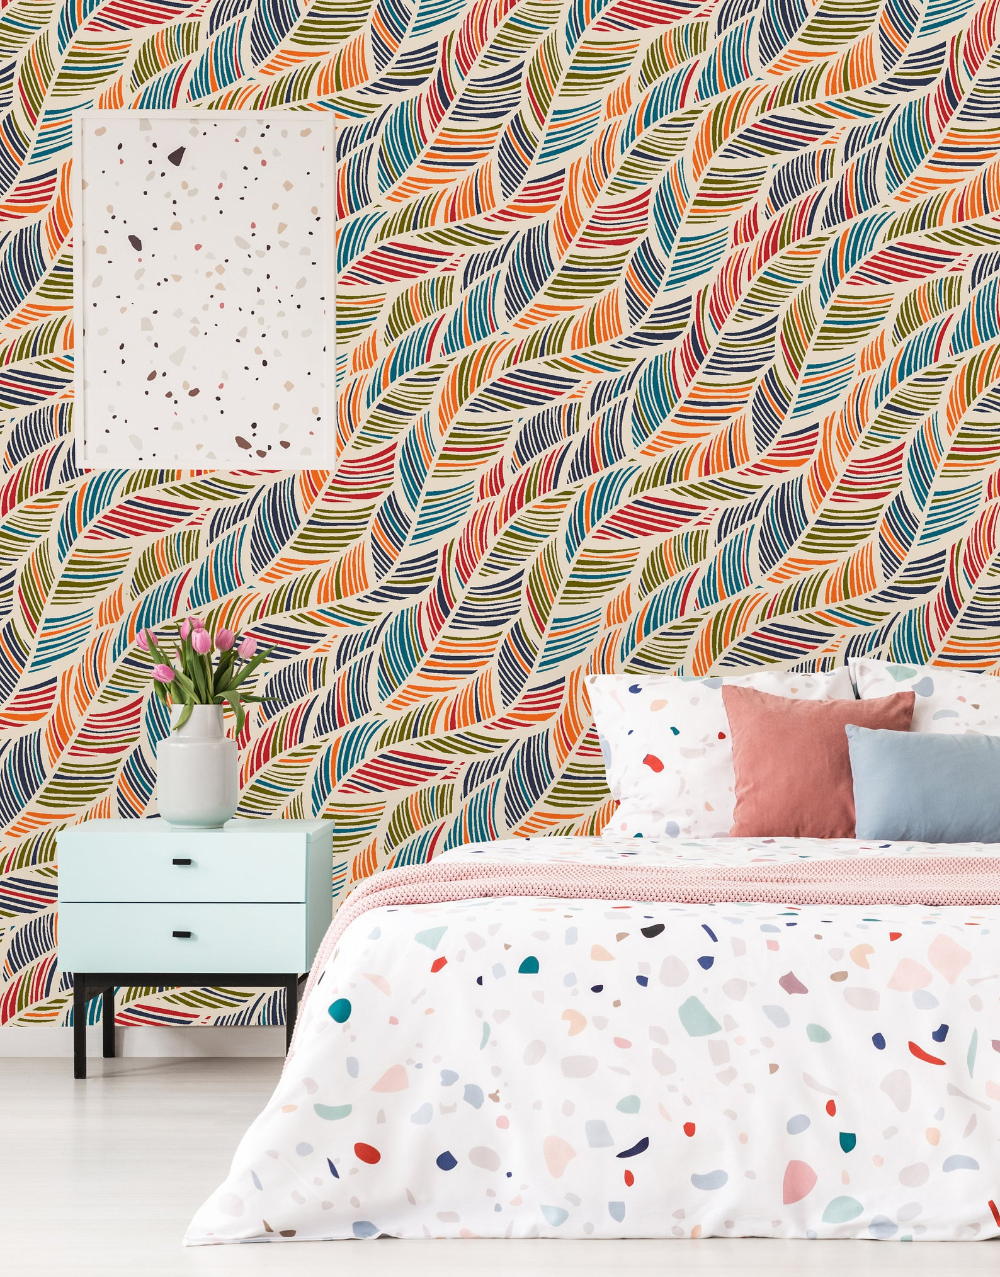 Removable Wallpaper Self Adhesive Wallpaper Vintage Colorful Etsy In 2020 Removable Wallpaper Wallpapers Vintage Peel And Stick Wallpaper